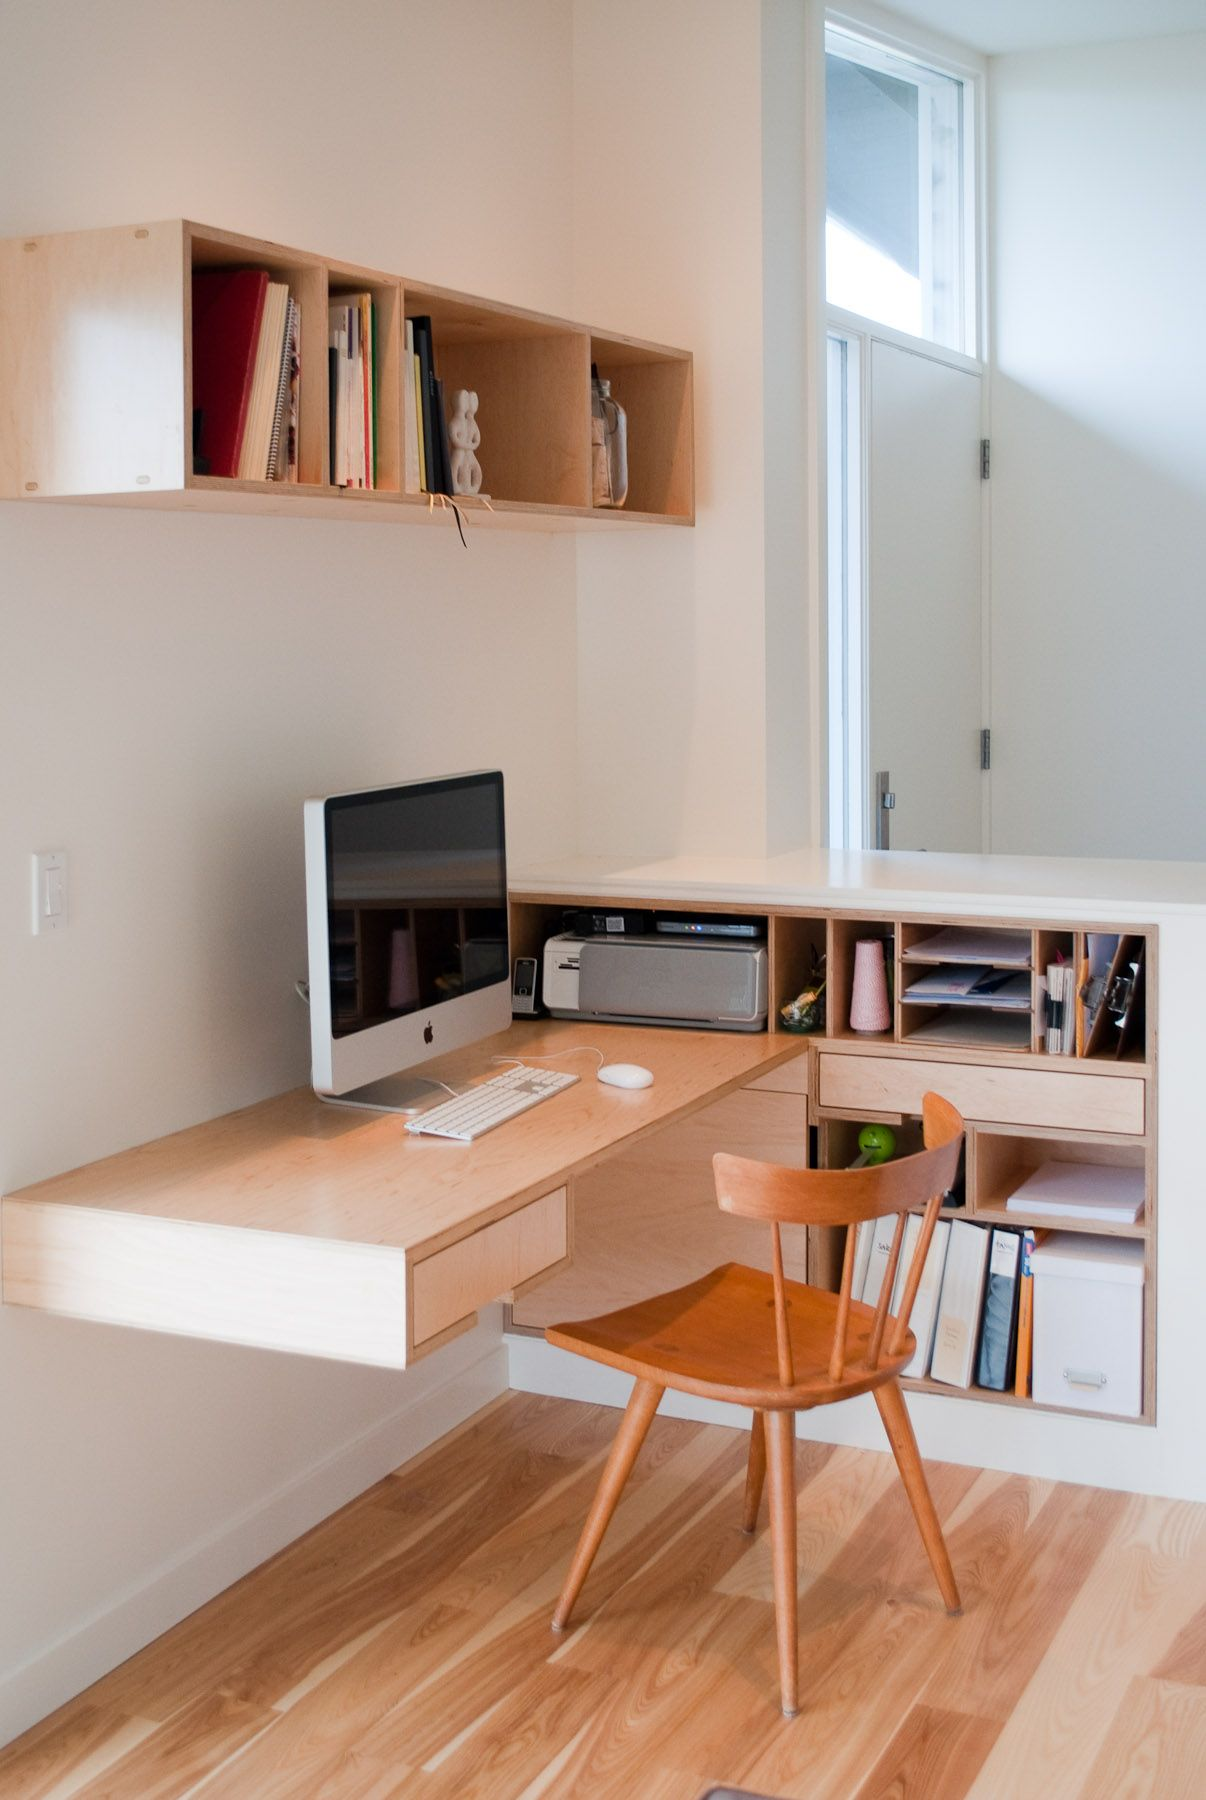 Image added in Office space Collection in Interior Design Category & Kim\u0027s desk \u2013 Small Home Offices | Office spaces Spaces and Interiors